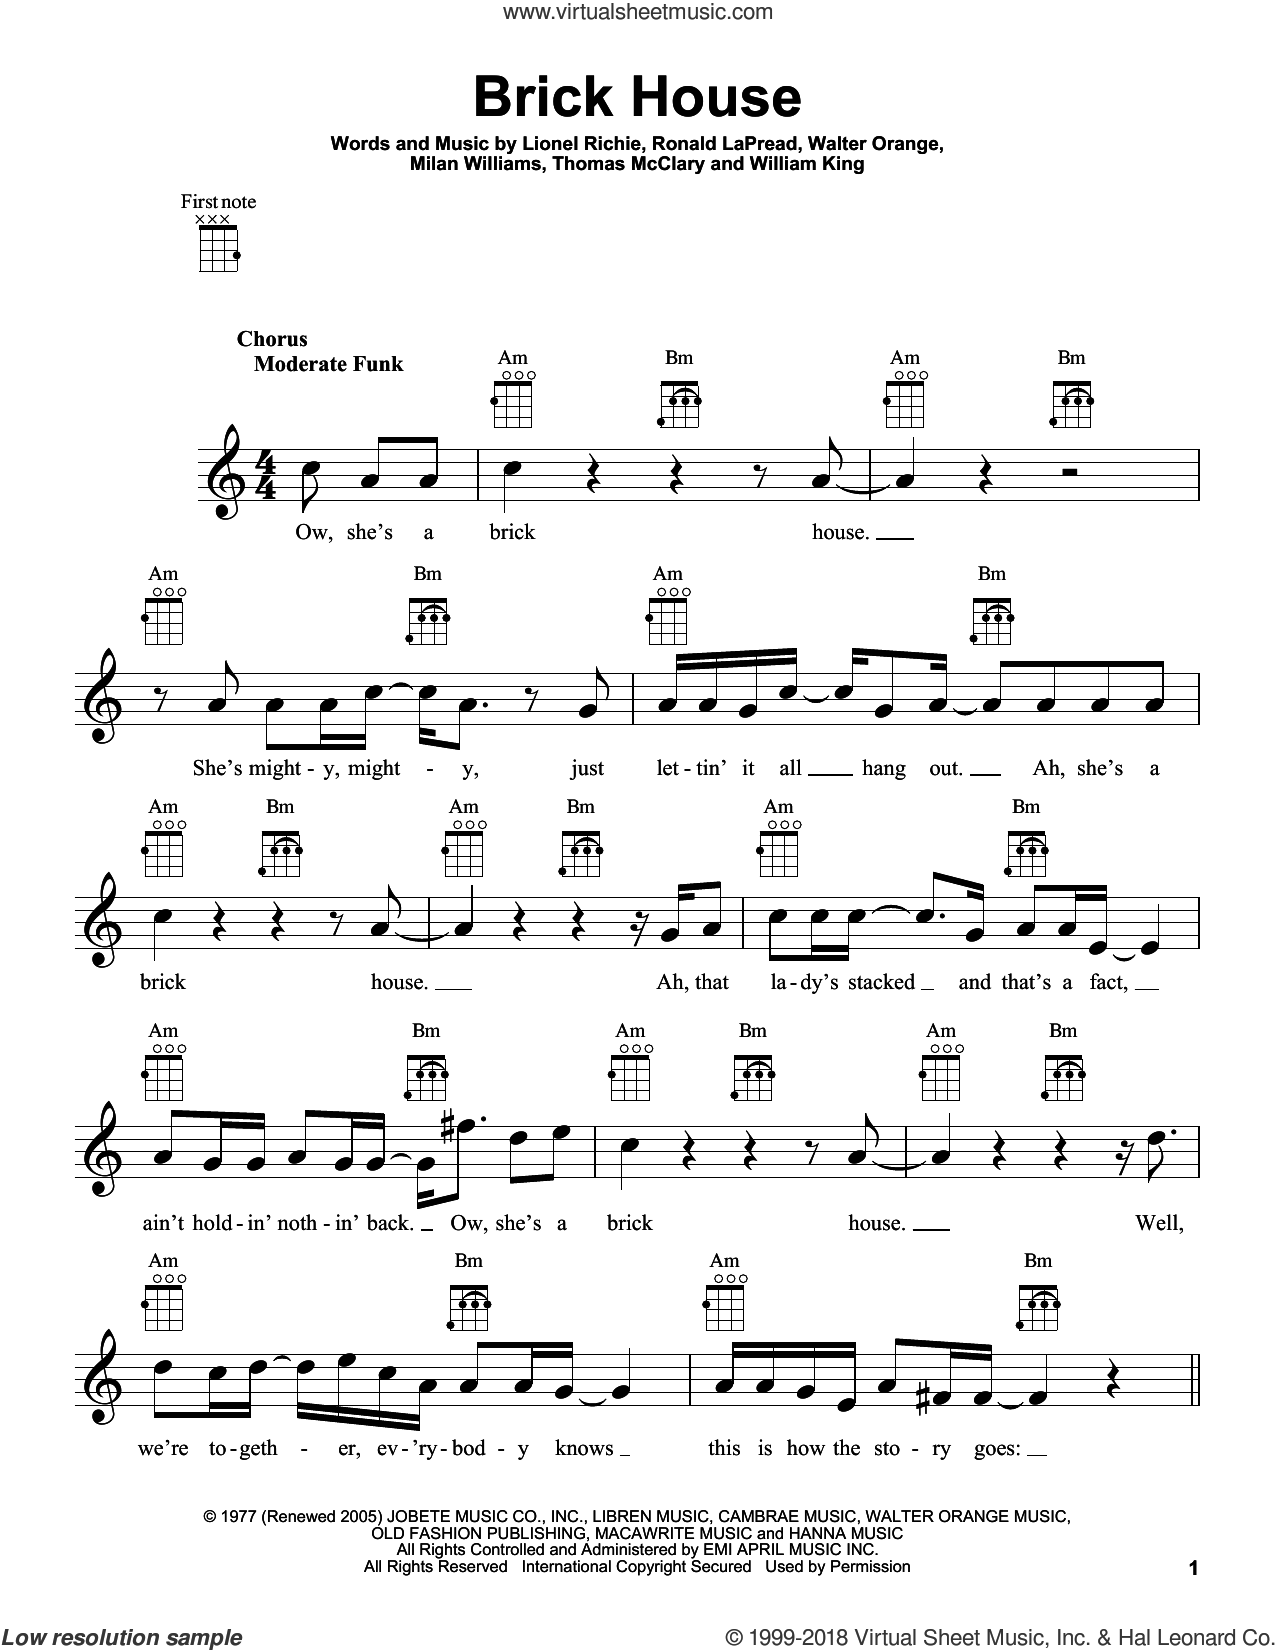 Brick House sheet music for ukulele by Lionel Richie, The Commodores, Milan Williams, Ronald LaPread, Thomas McClary, Walter Orange and William King, intermediate skill level